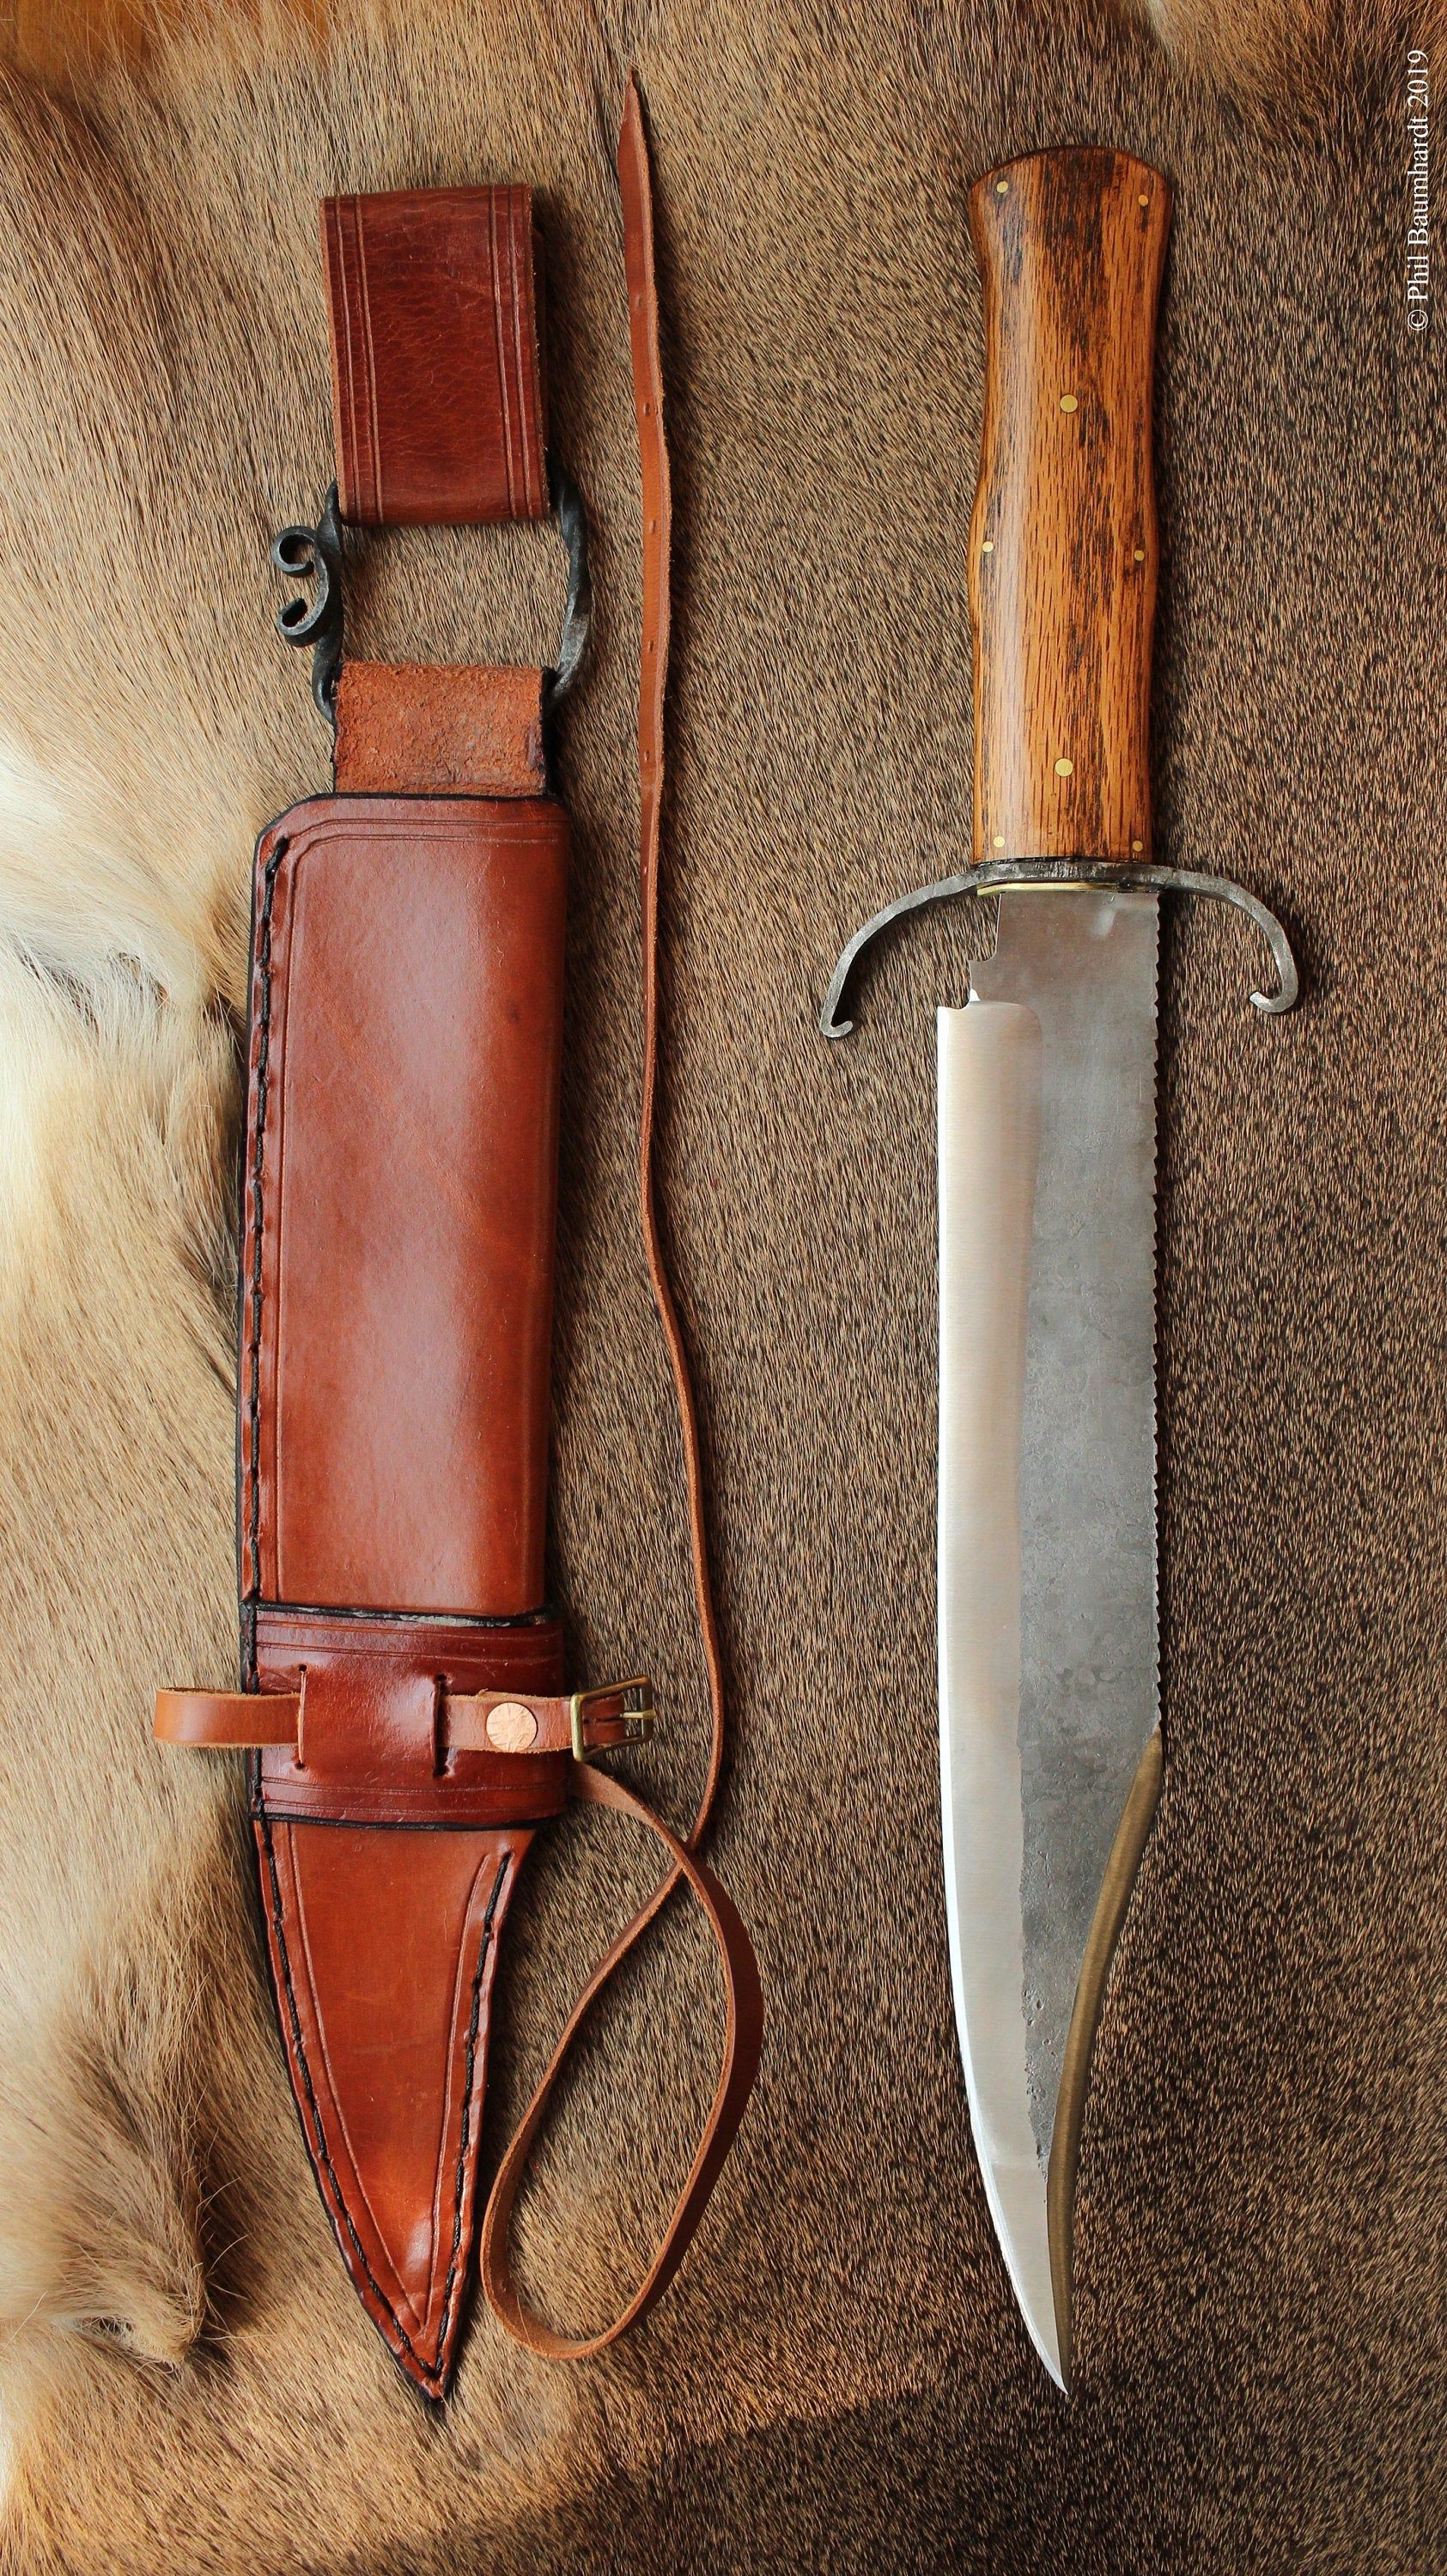 Blade Catcher Bowie Knife Oak Hand Forged Guard Leather Sheath 1095 High Carbon Steel With Sharpened False Edge Made In Bowie Knife Knife Leather Sheath